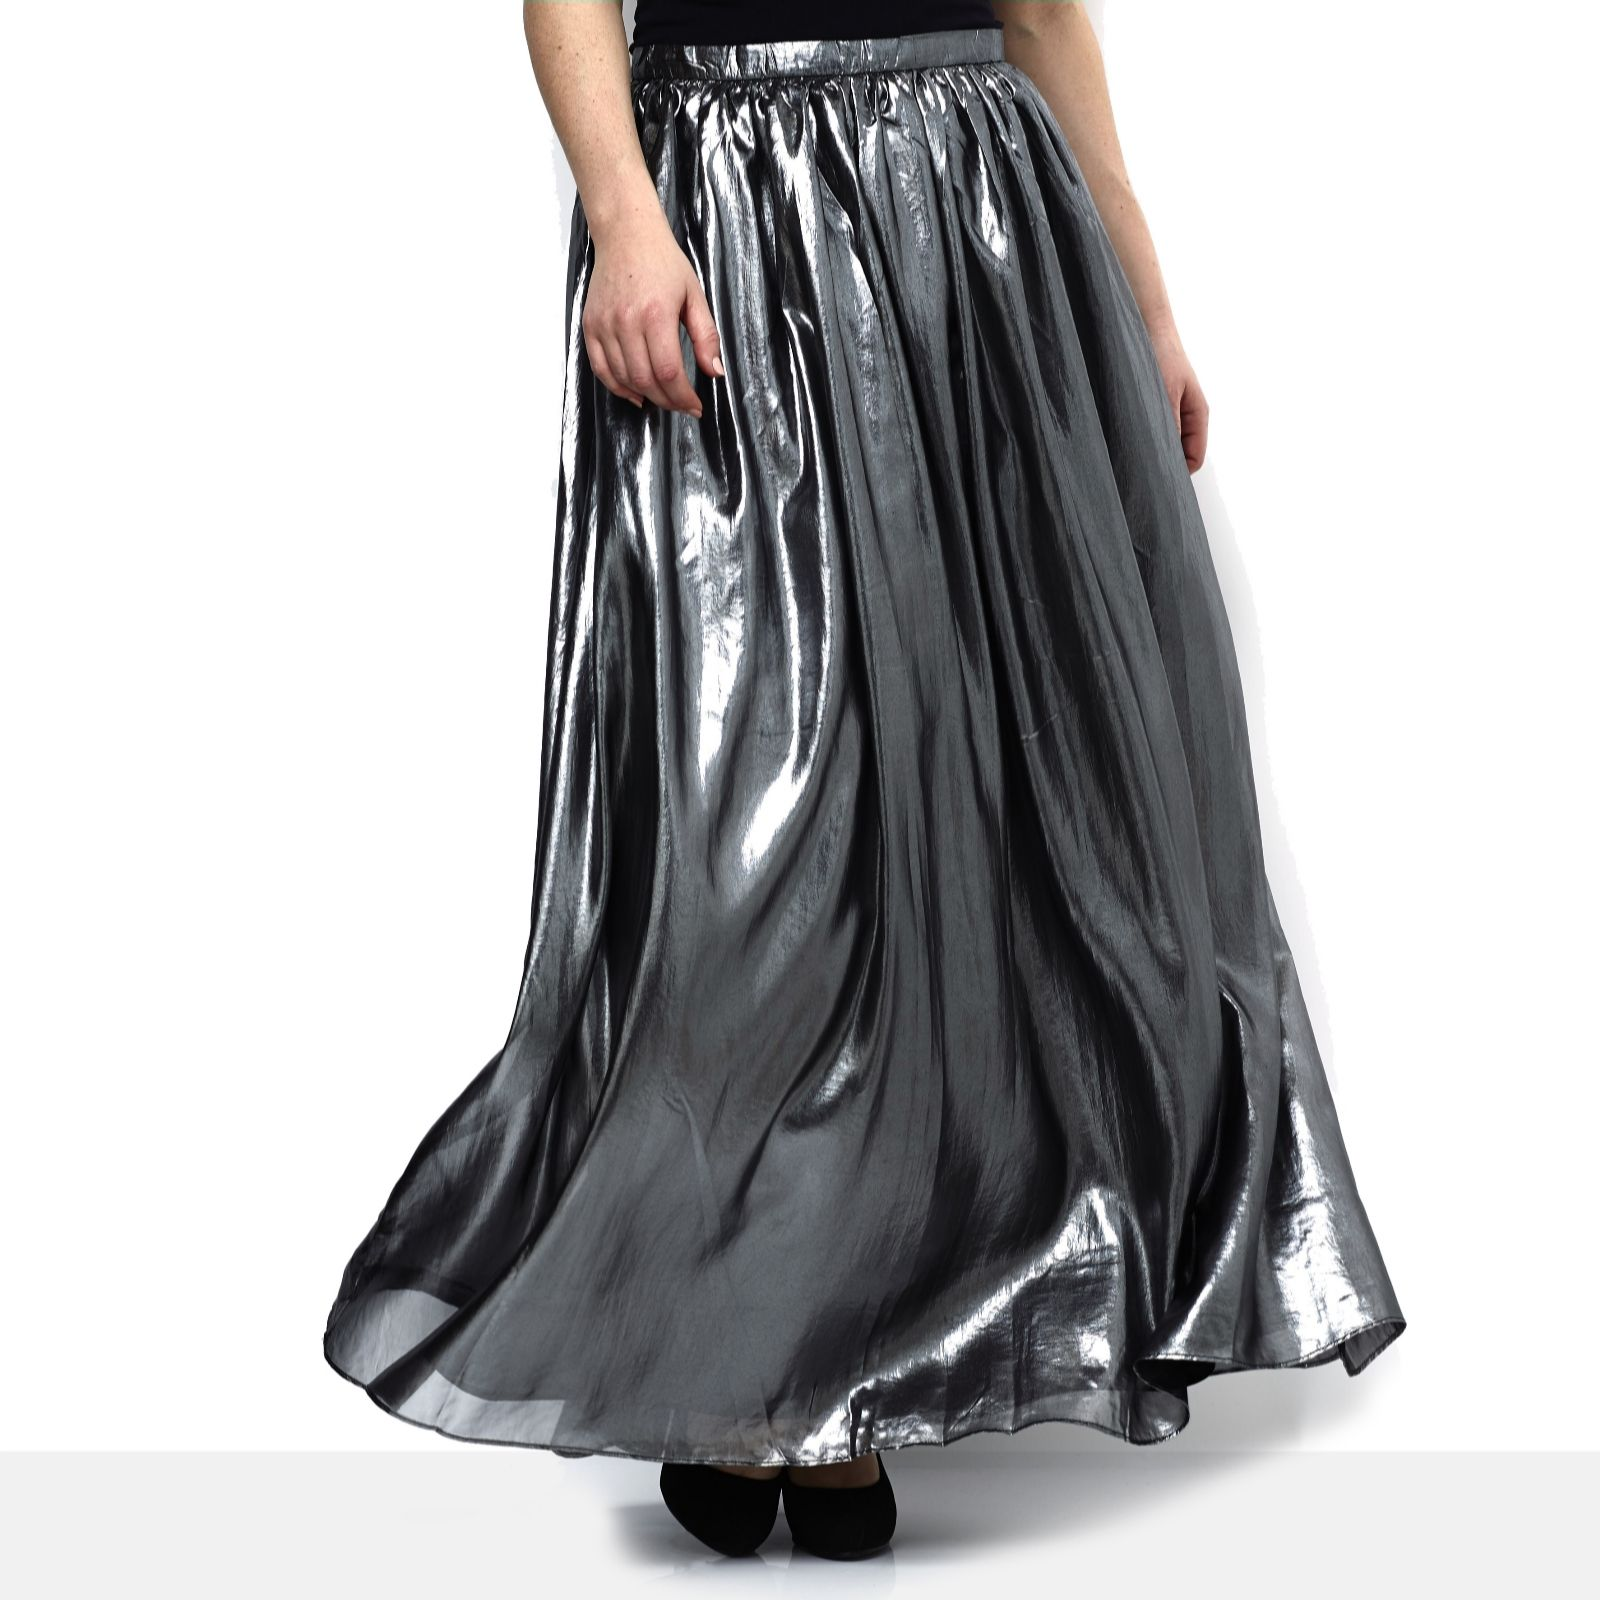 869fd74f90 Label Lab Metallic Maxi Skirt - QVC UK